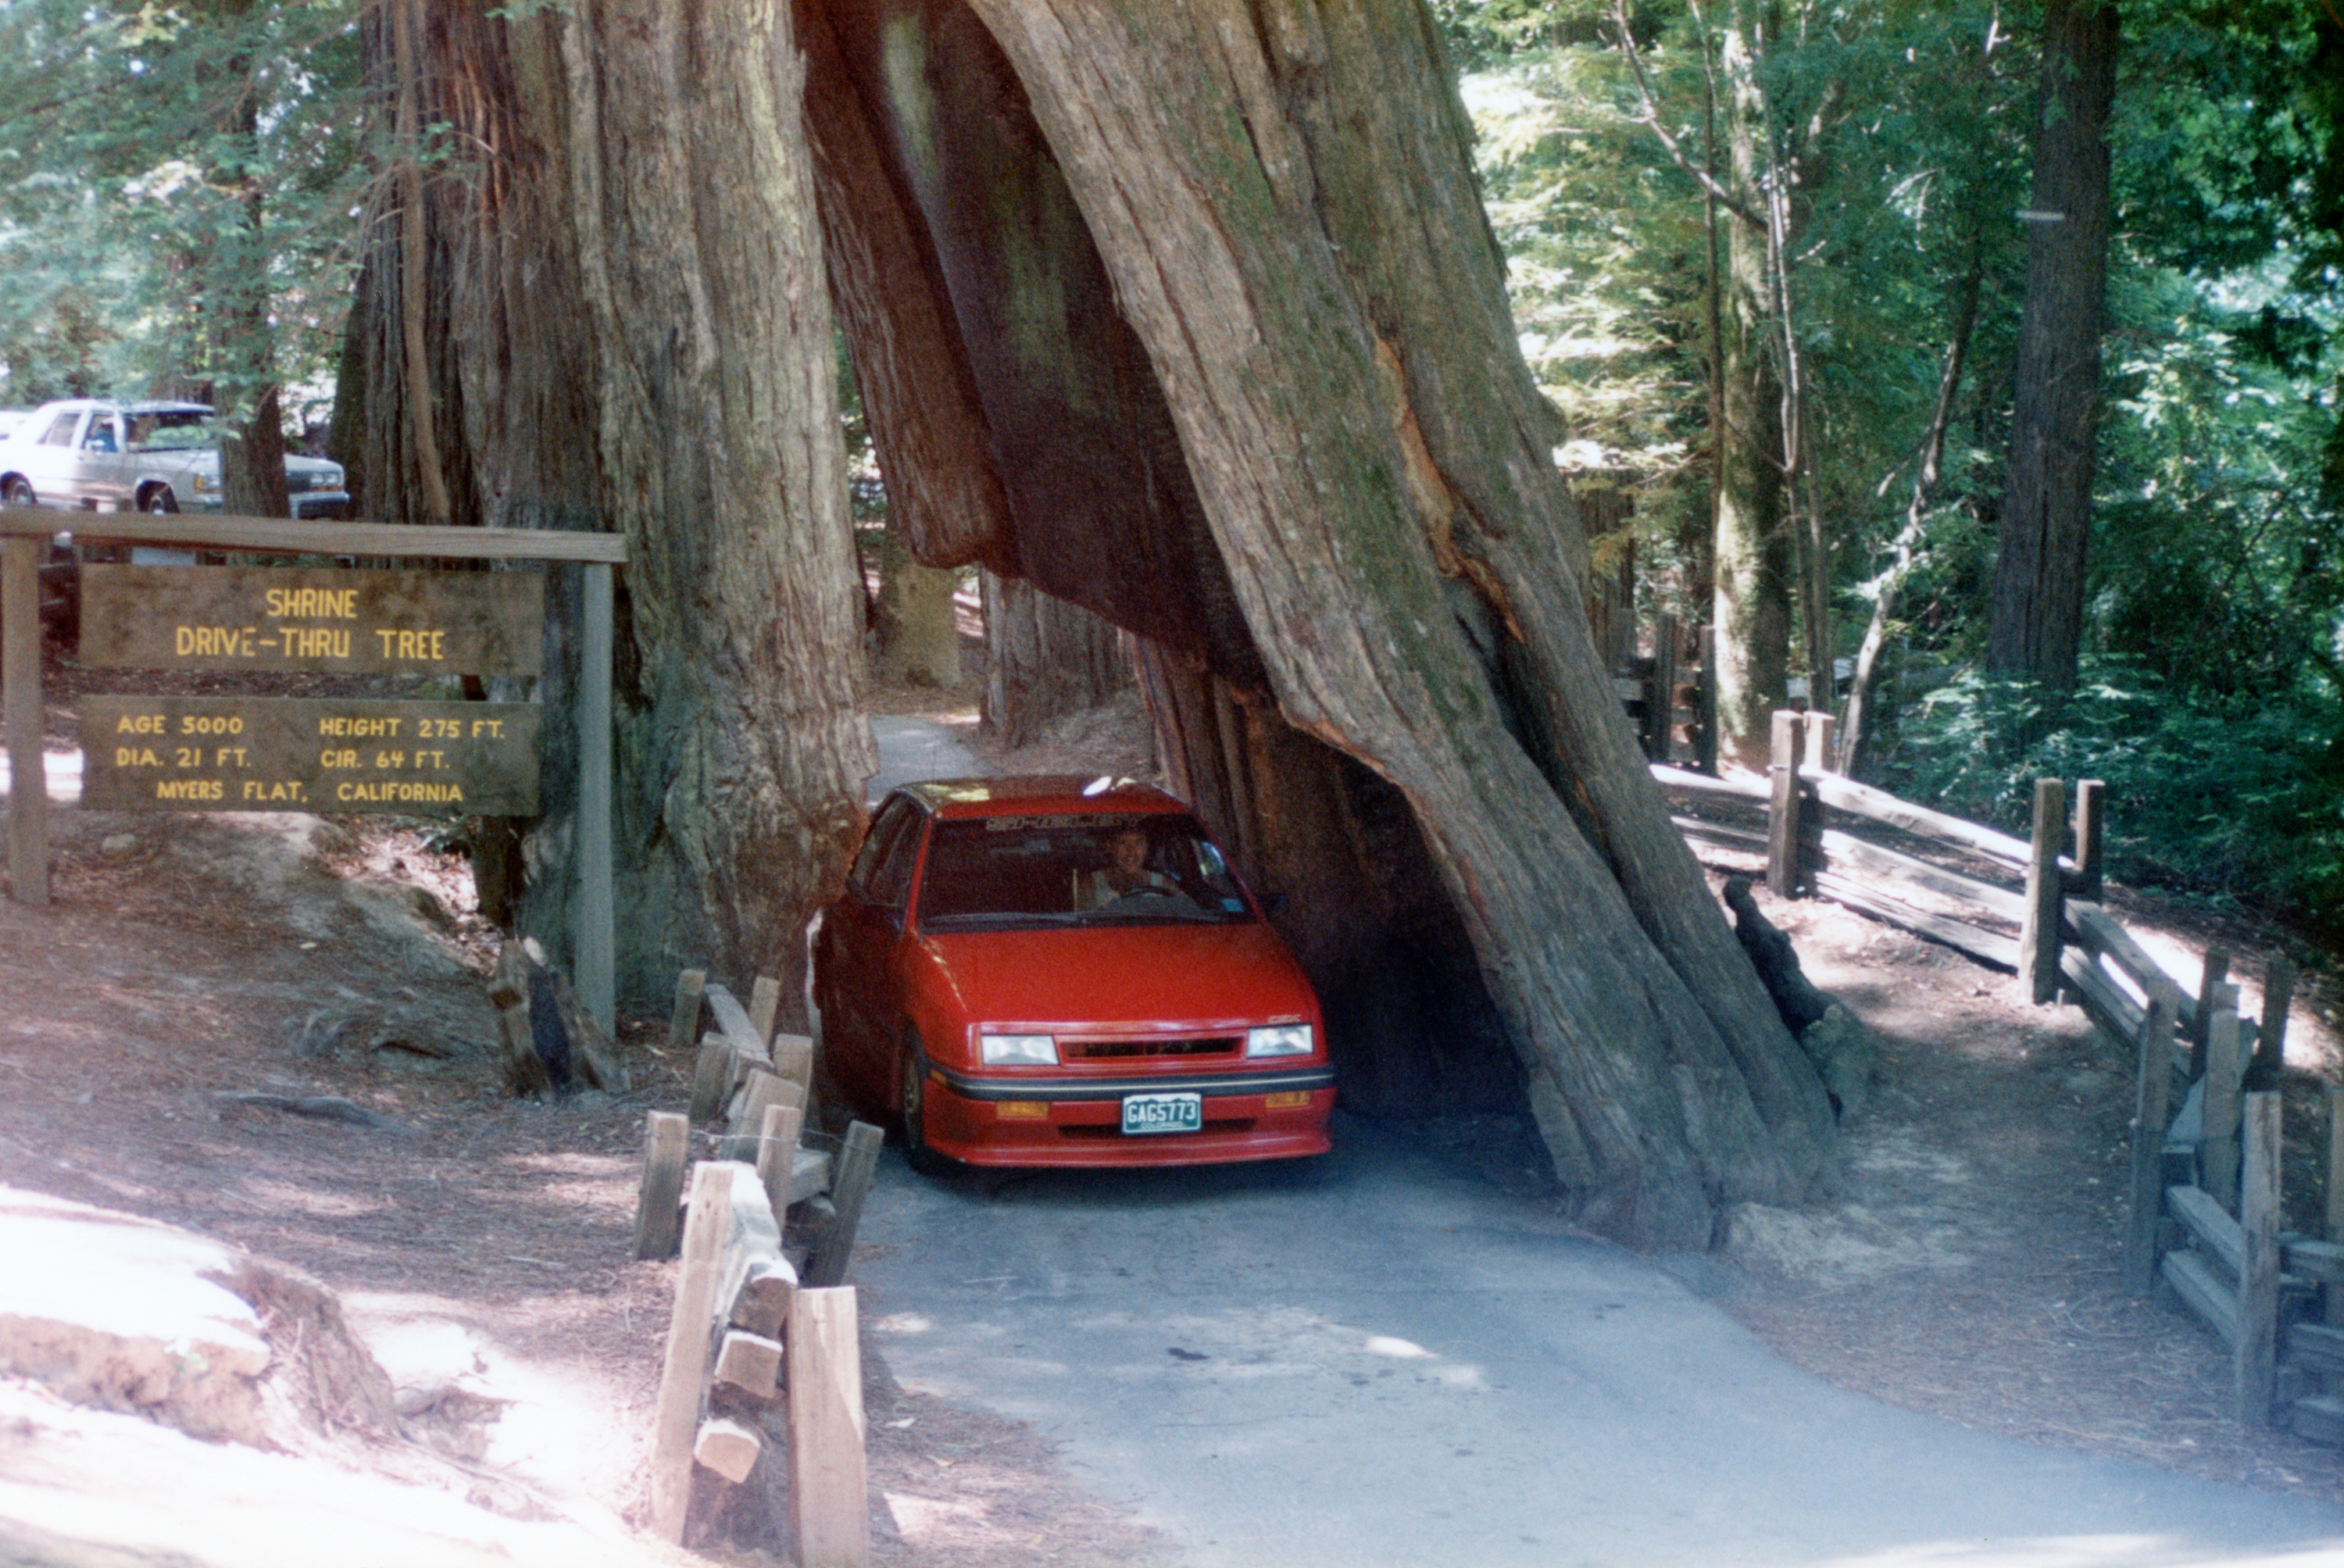 1989 Dodge Shadow CSX Giant Redwood Tree